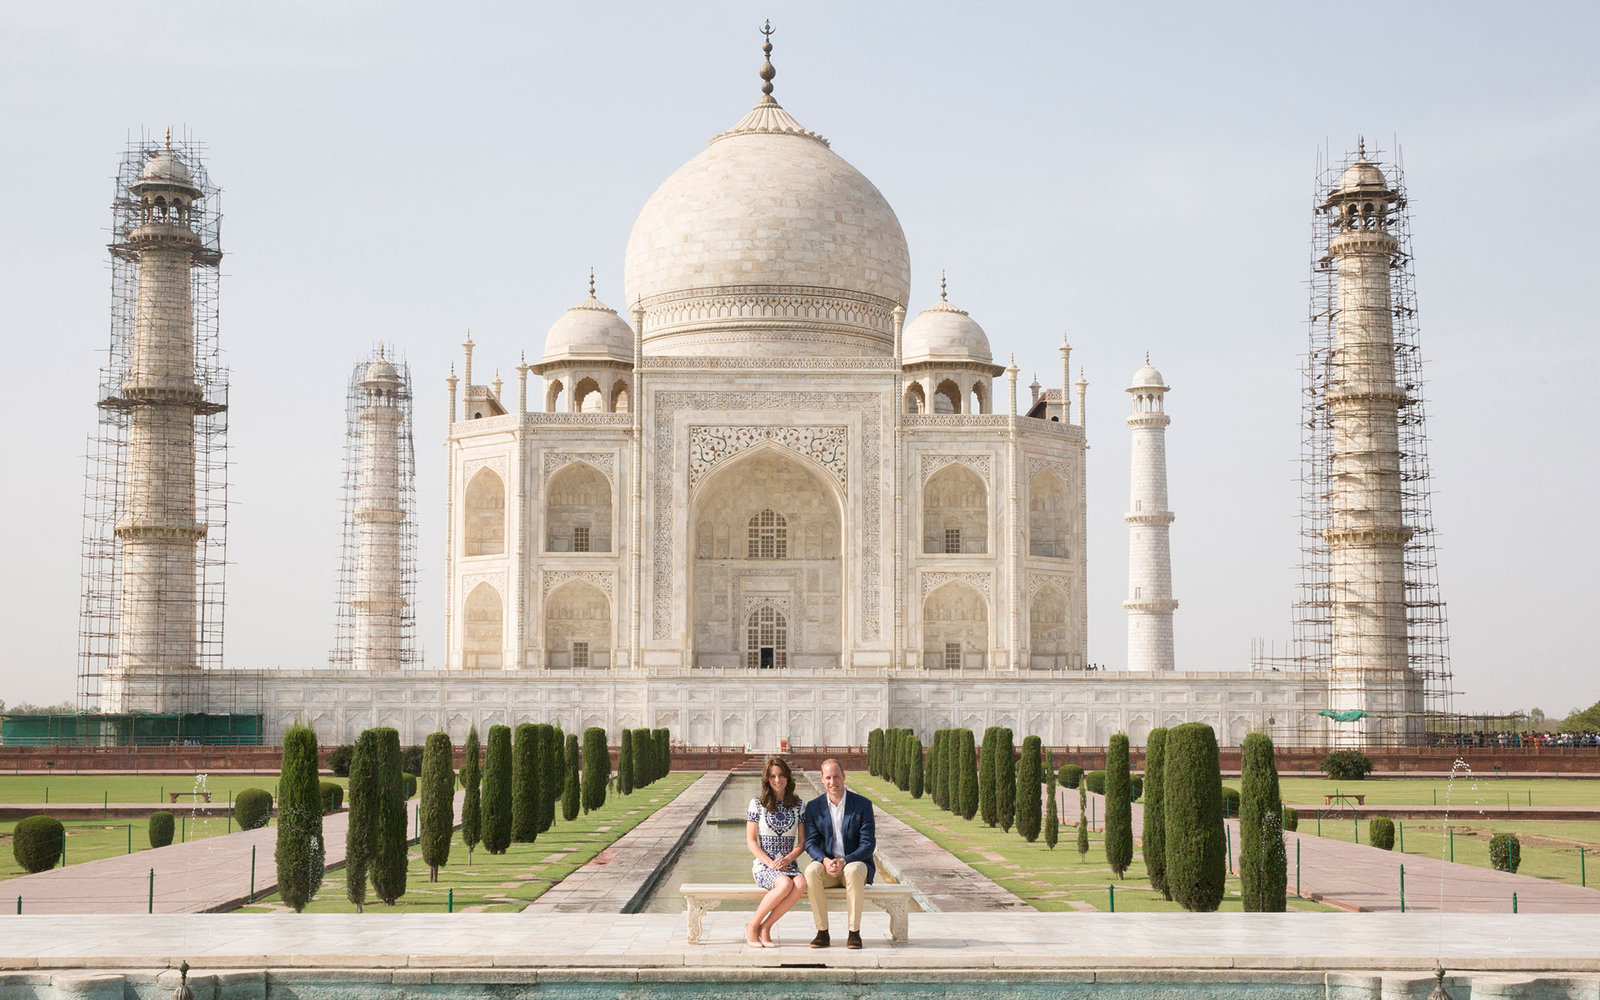 AGRA, INDIA - APRIL 16:  Prince William, Duke of Cambridge and Catherine, Duchess of Cambridge sit in front of the Taj Mahal during day seven of the royal tour of India and Bhutan on April 16, 2016 in Agra, India. This is the last engagement of the Royal